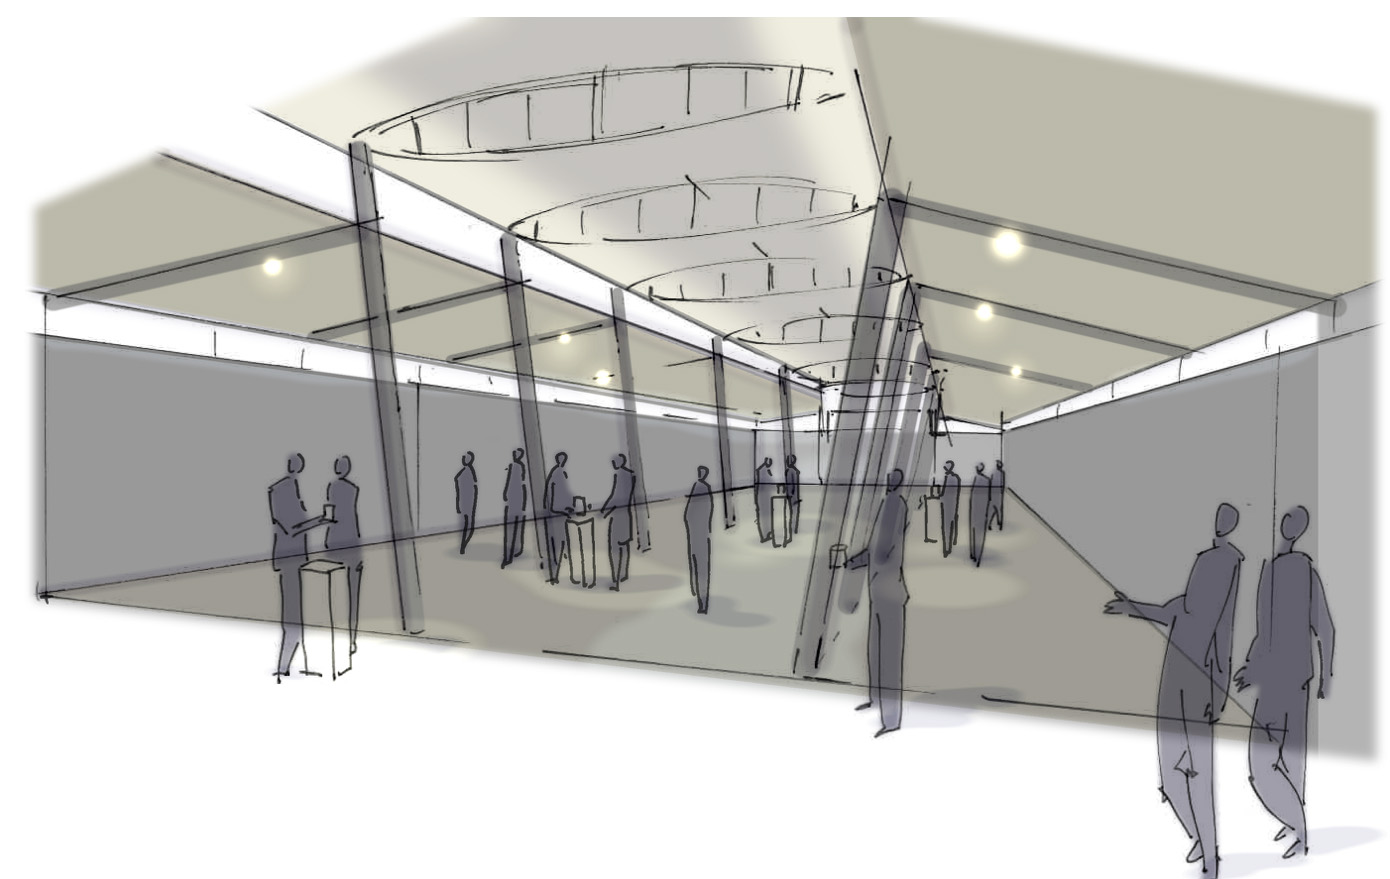 "<span class=""deutsch"">Ausstellungshalle mit Besuchern_Entwurfsskizze</span><span class=""englisch"">exhibition hall with visitors_design sketch</span>"